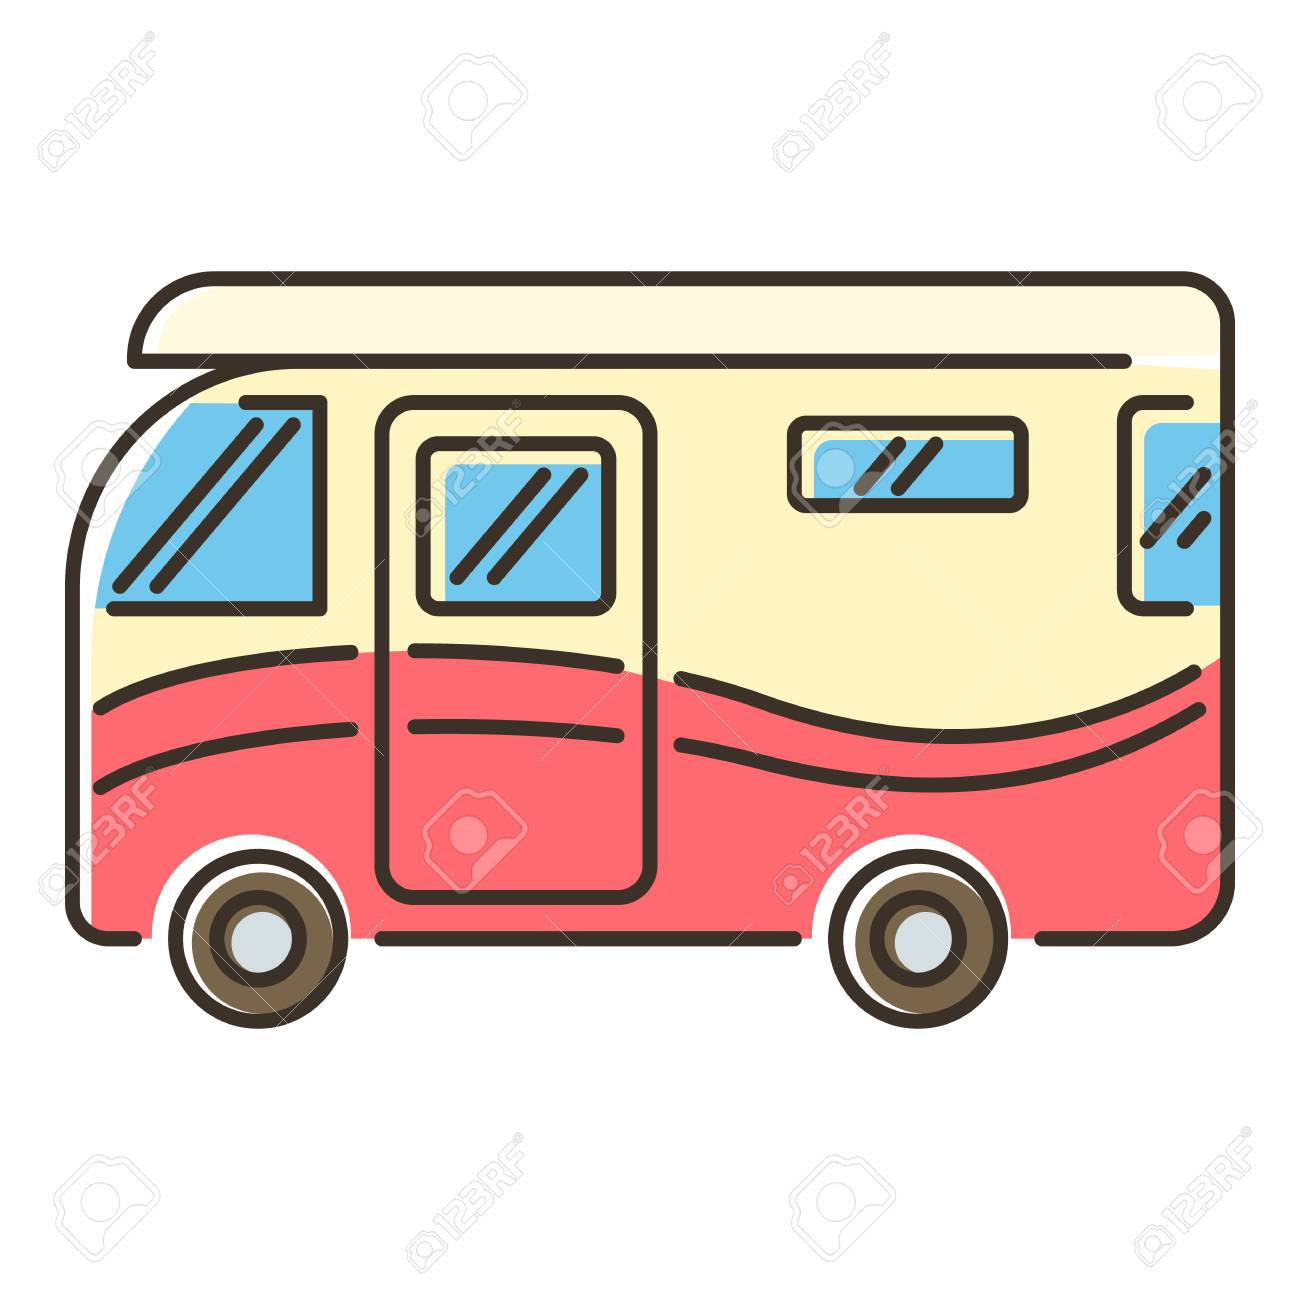 Camper van icon. Flat illustration of vector icon for web